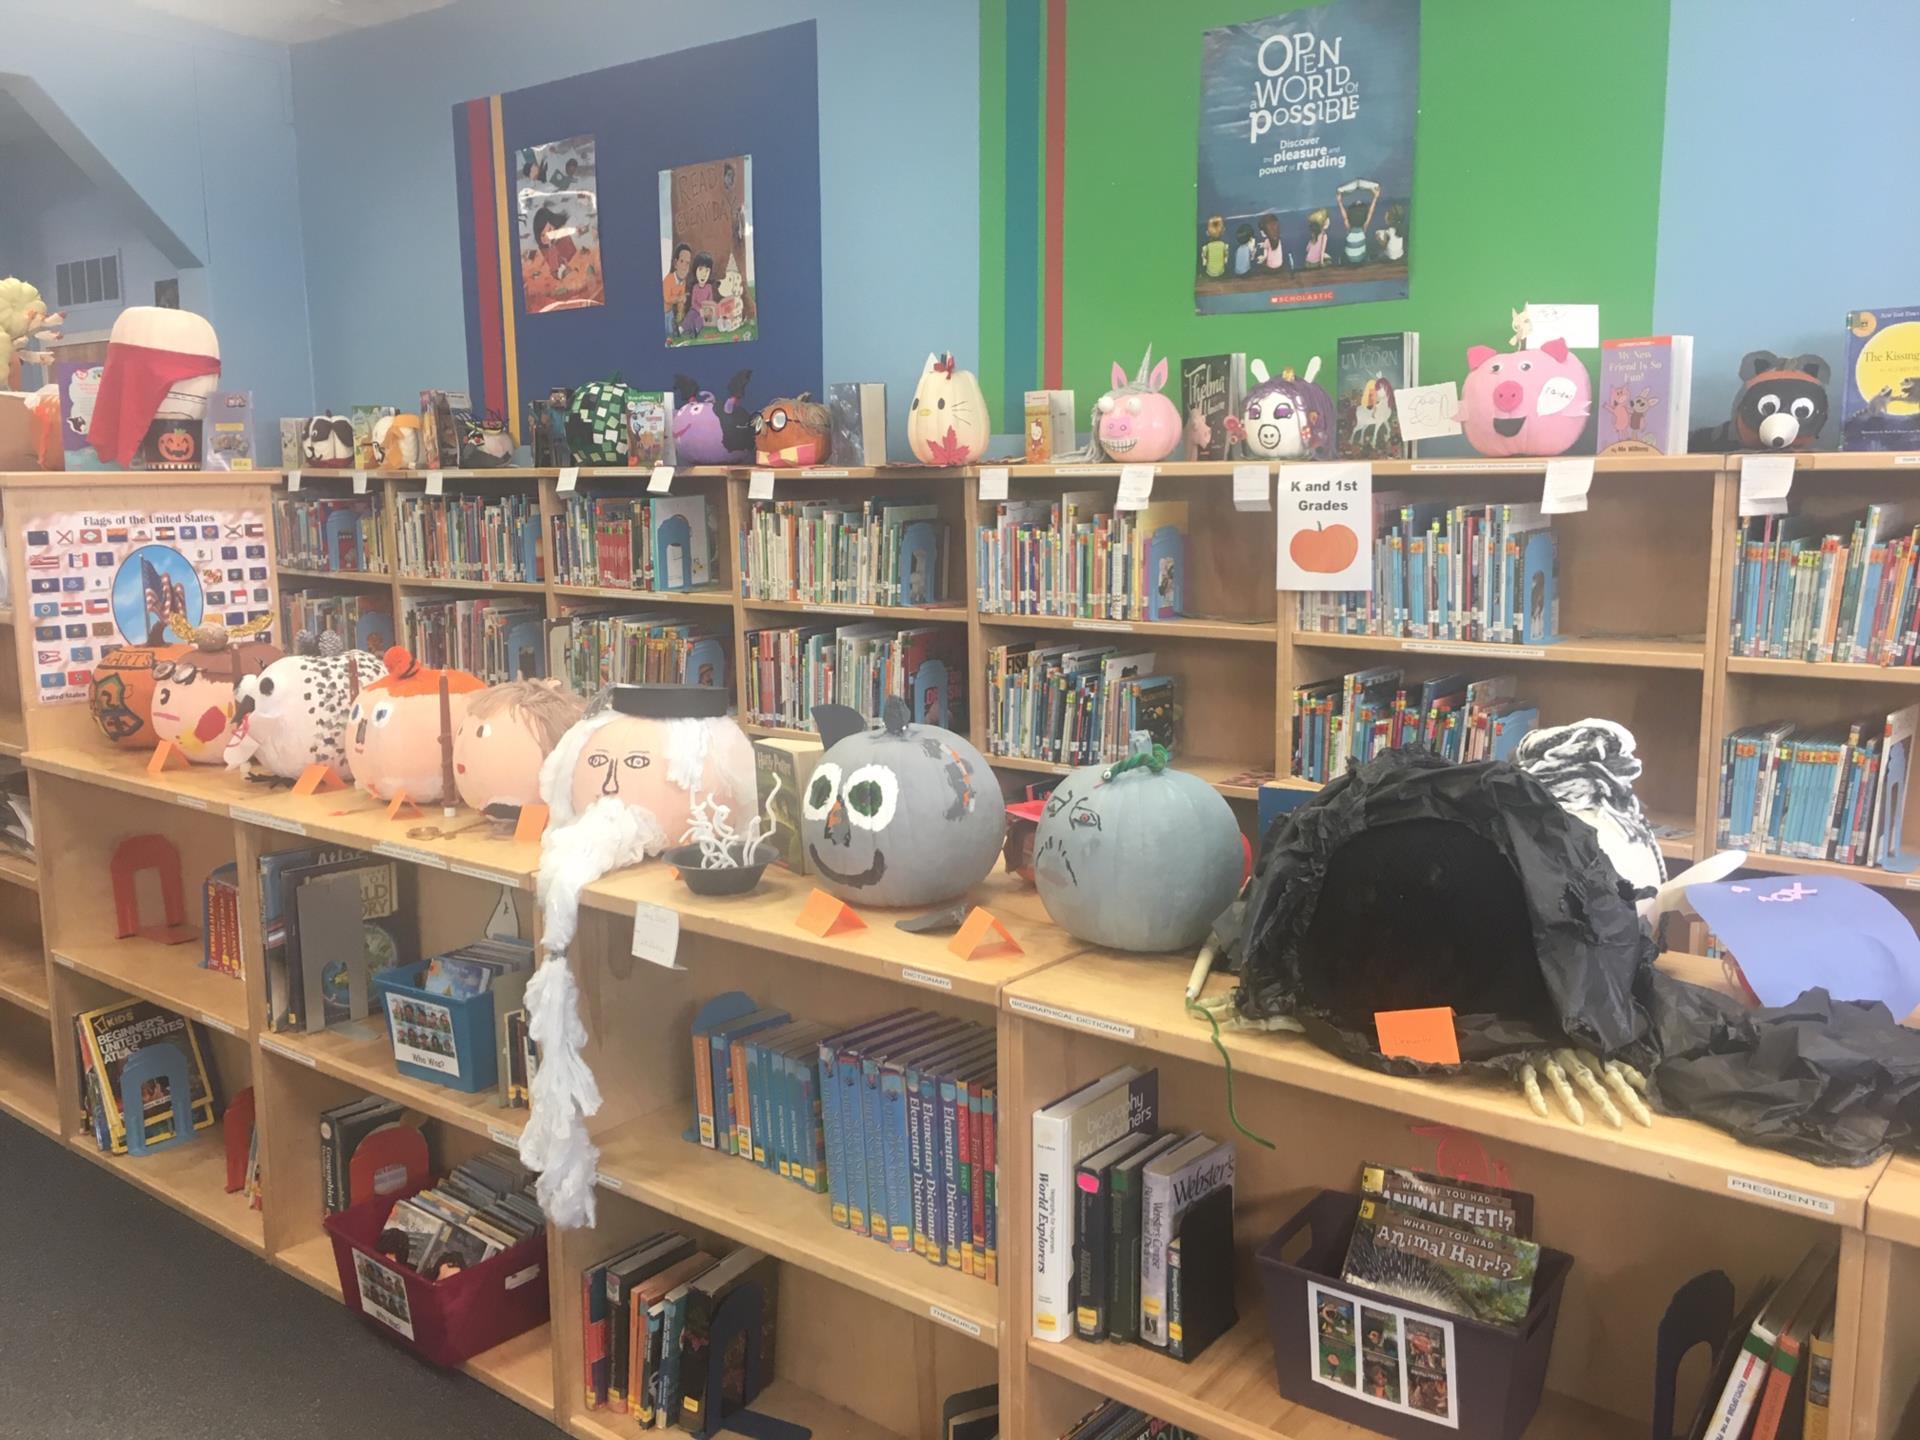 decorated pumpkins on bookshelves